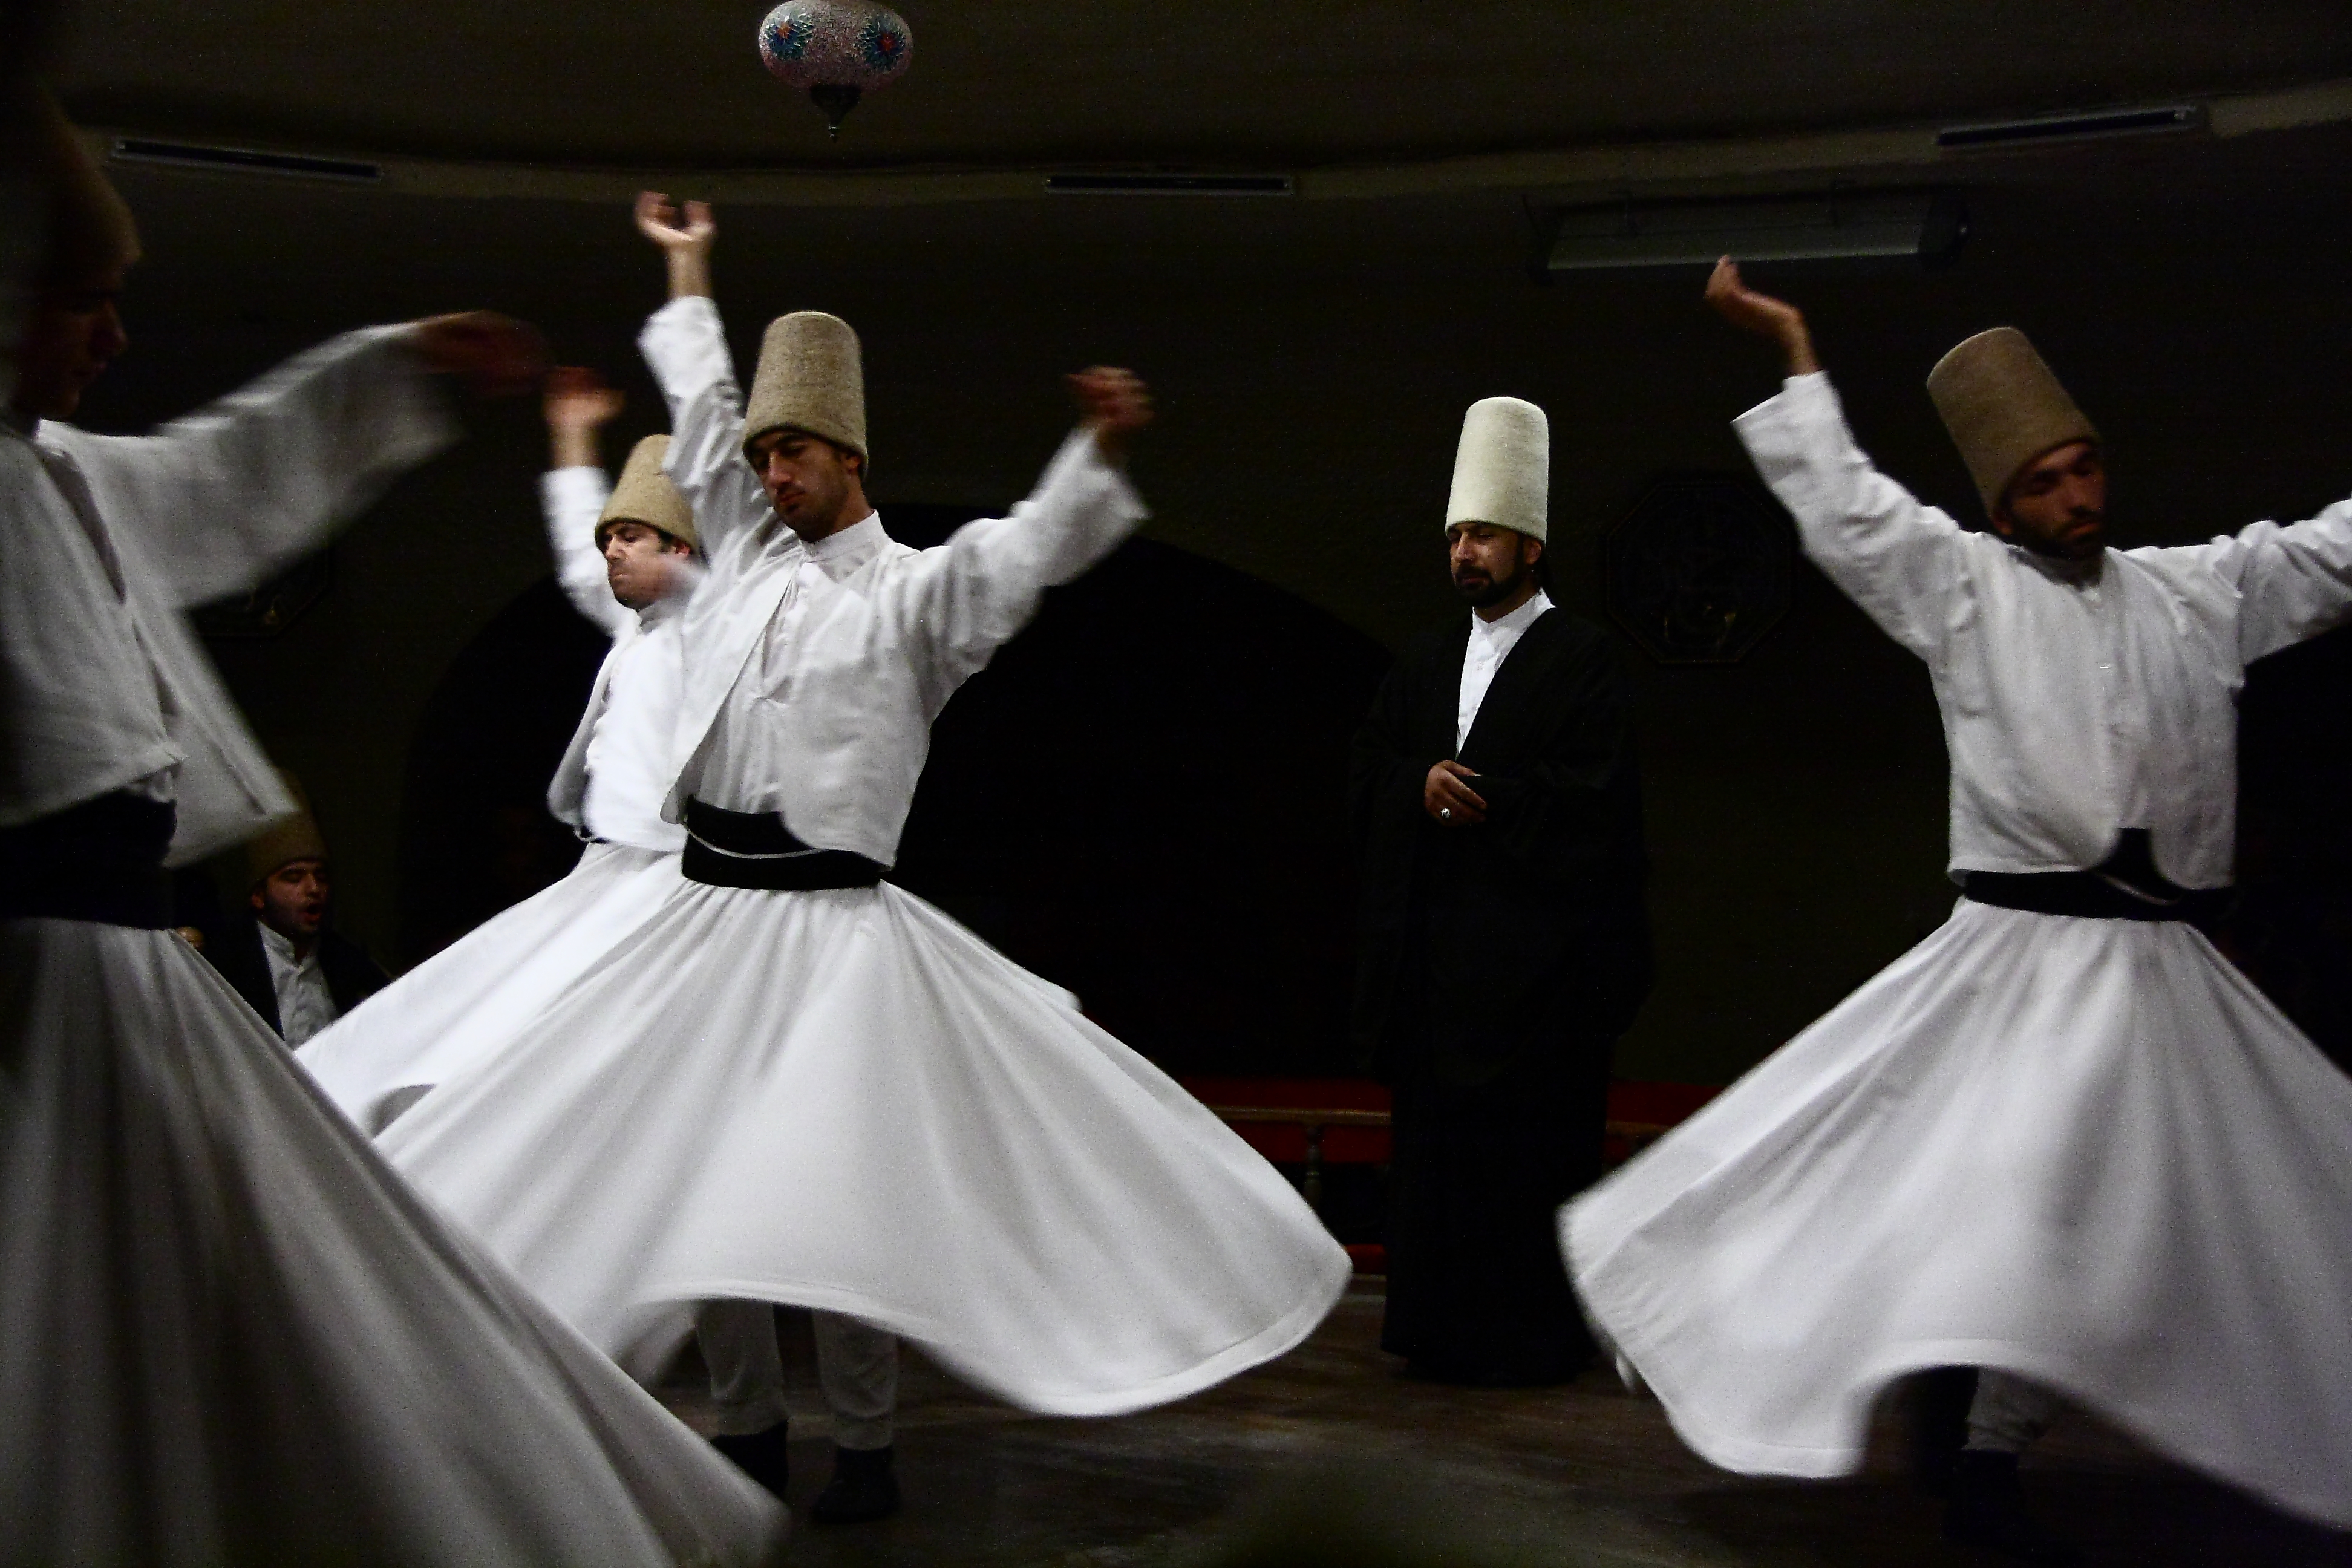 The Whirling Dervishes